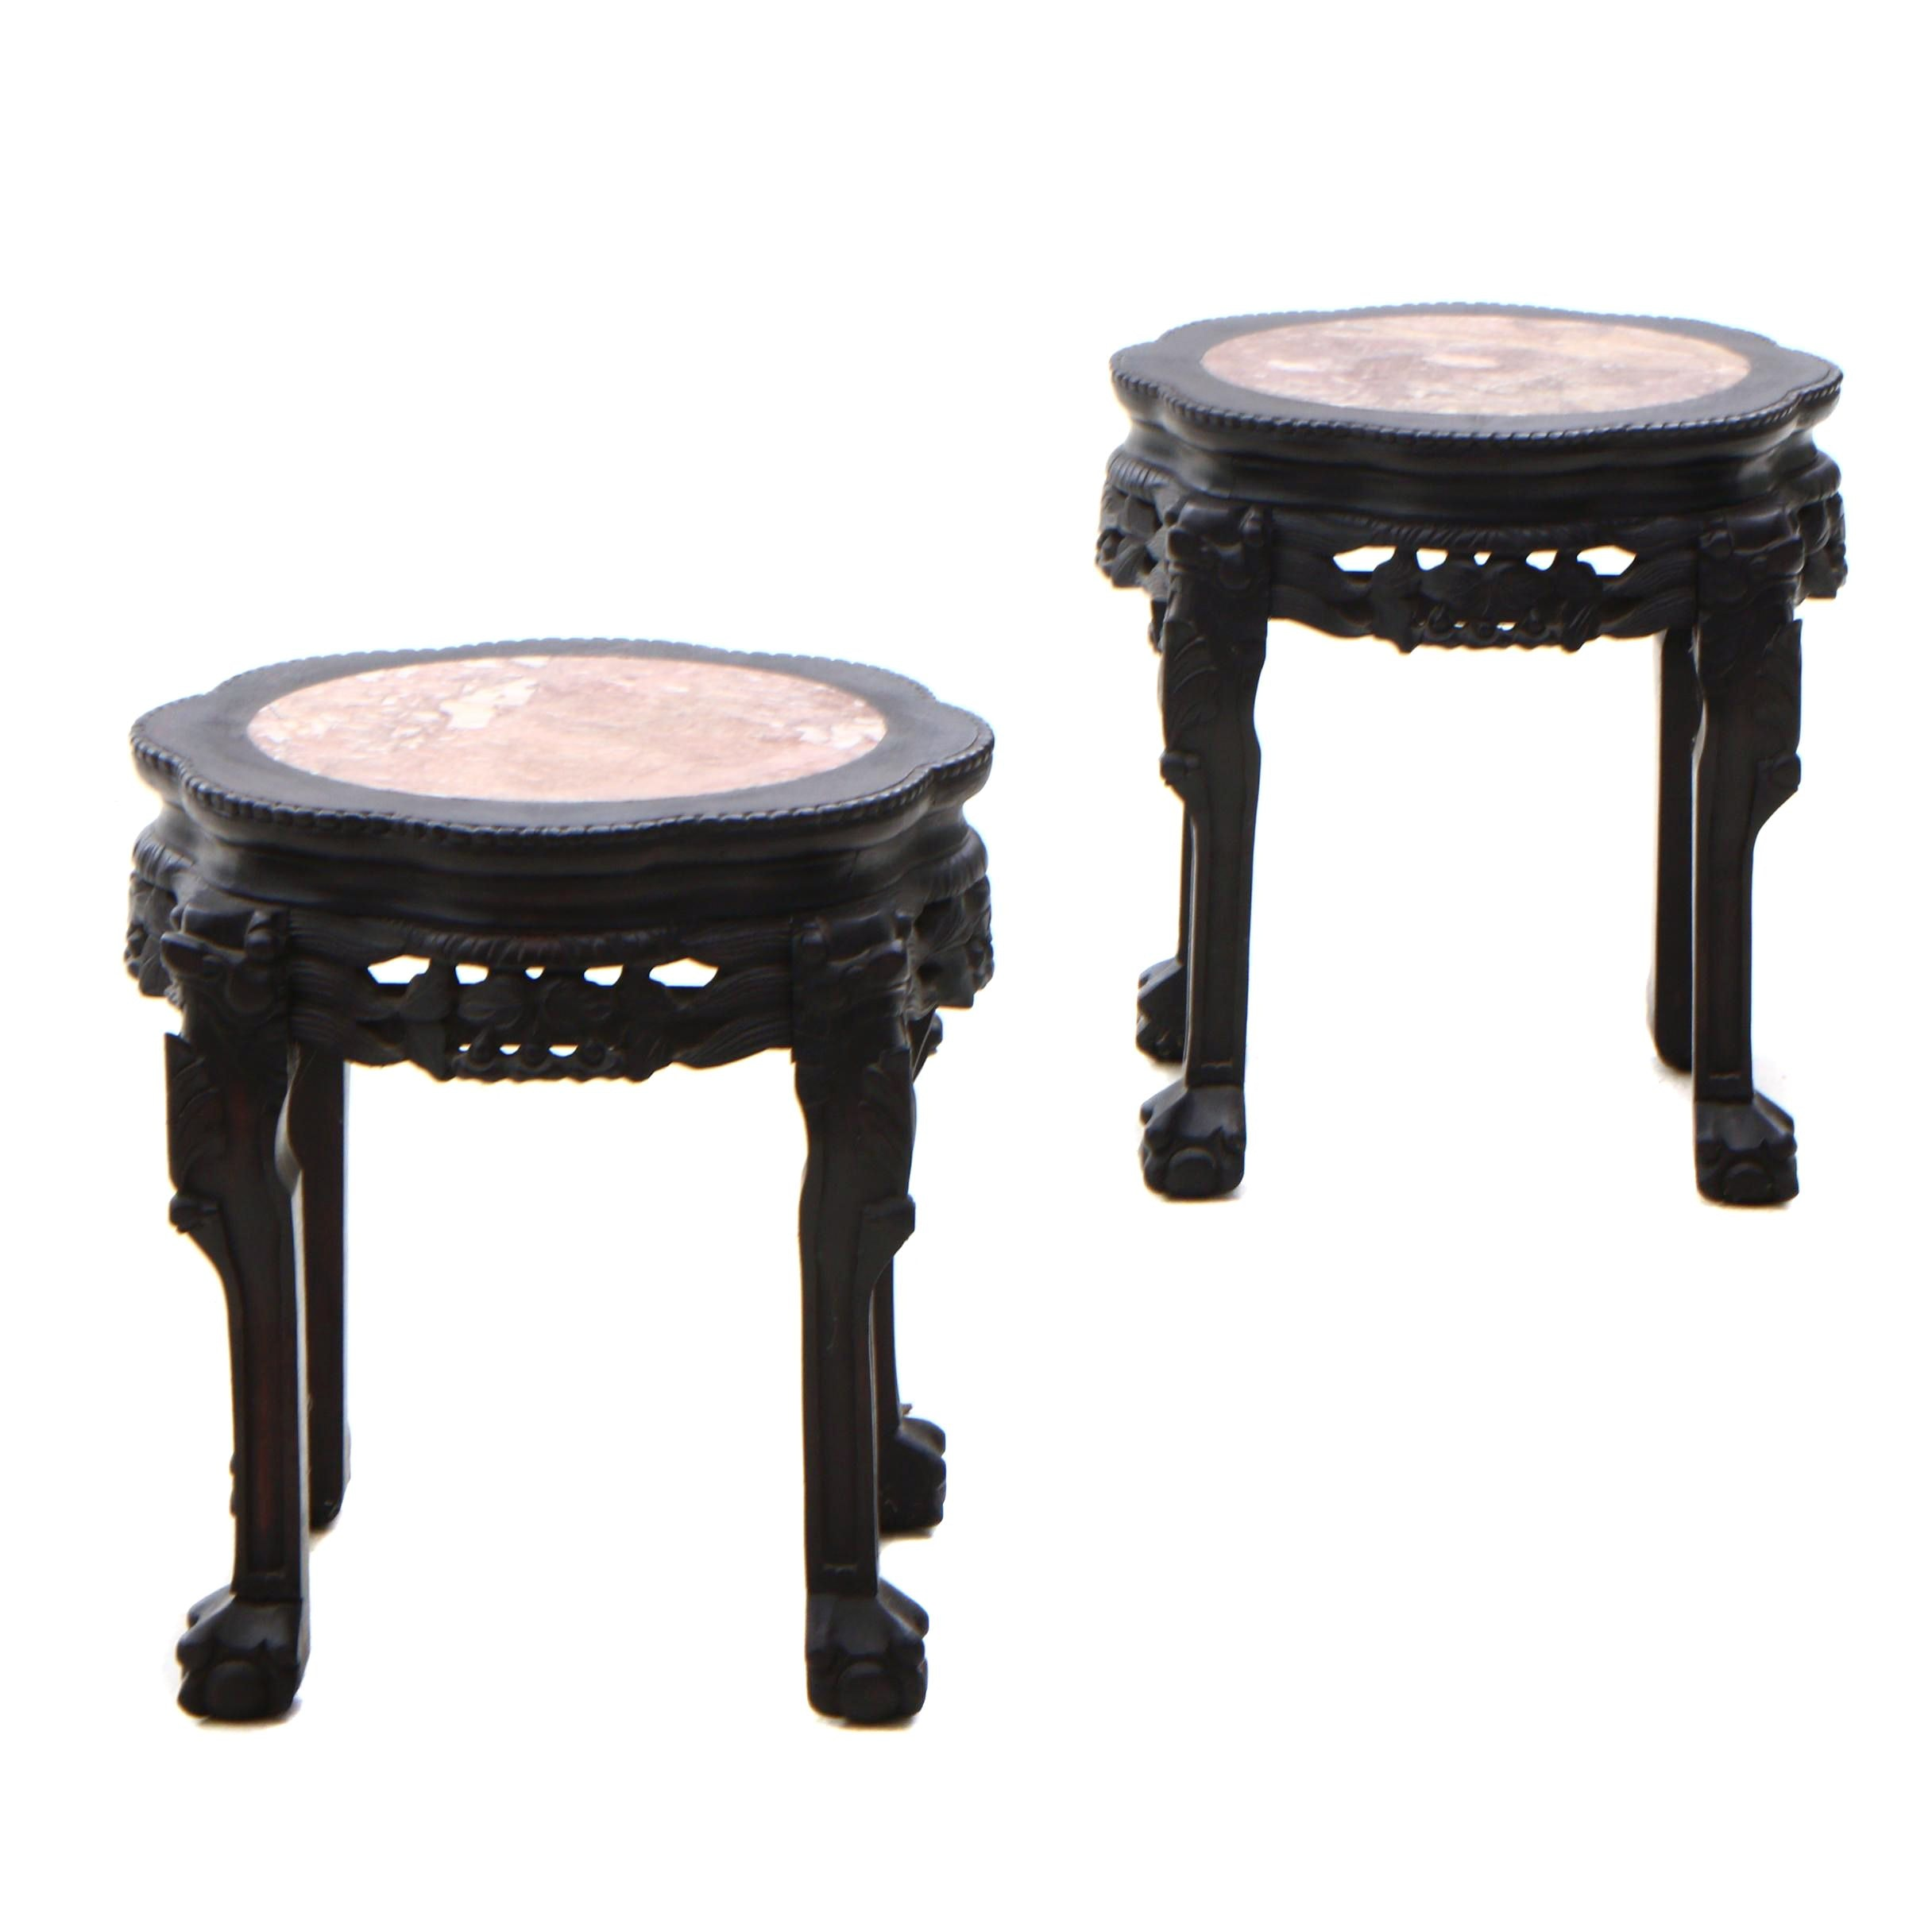 Chinese Ebonized Marble Top Accent Tables, Contemporary